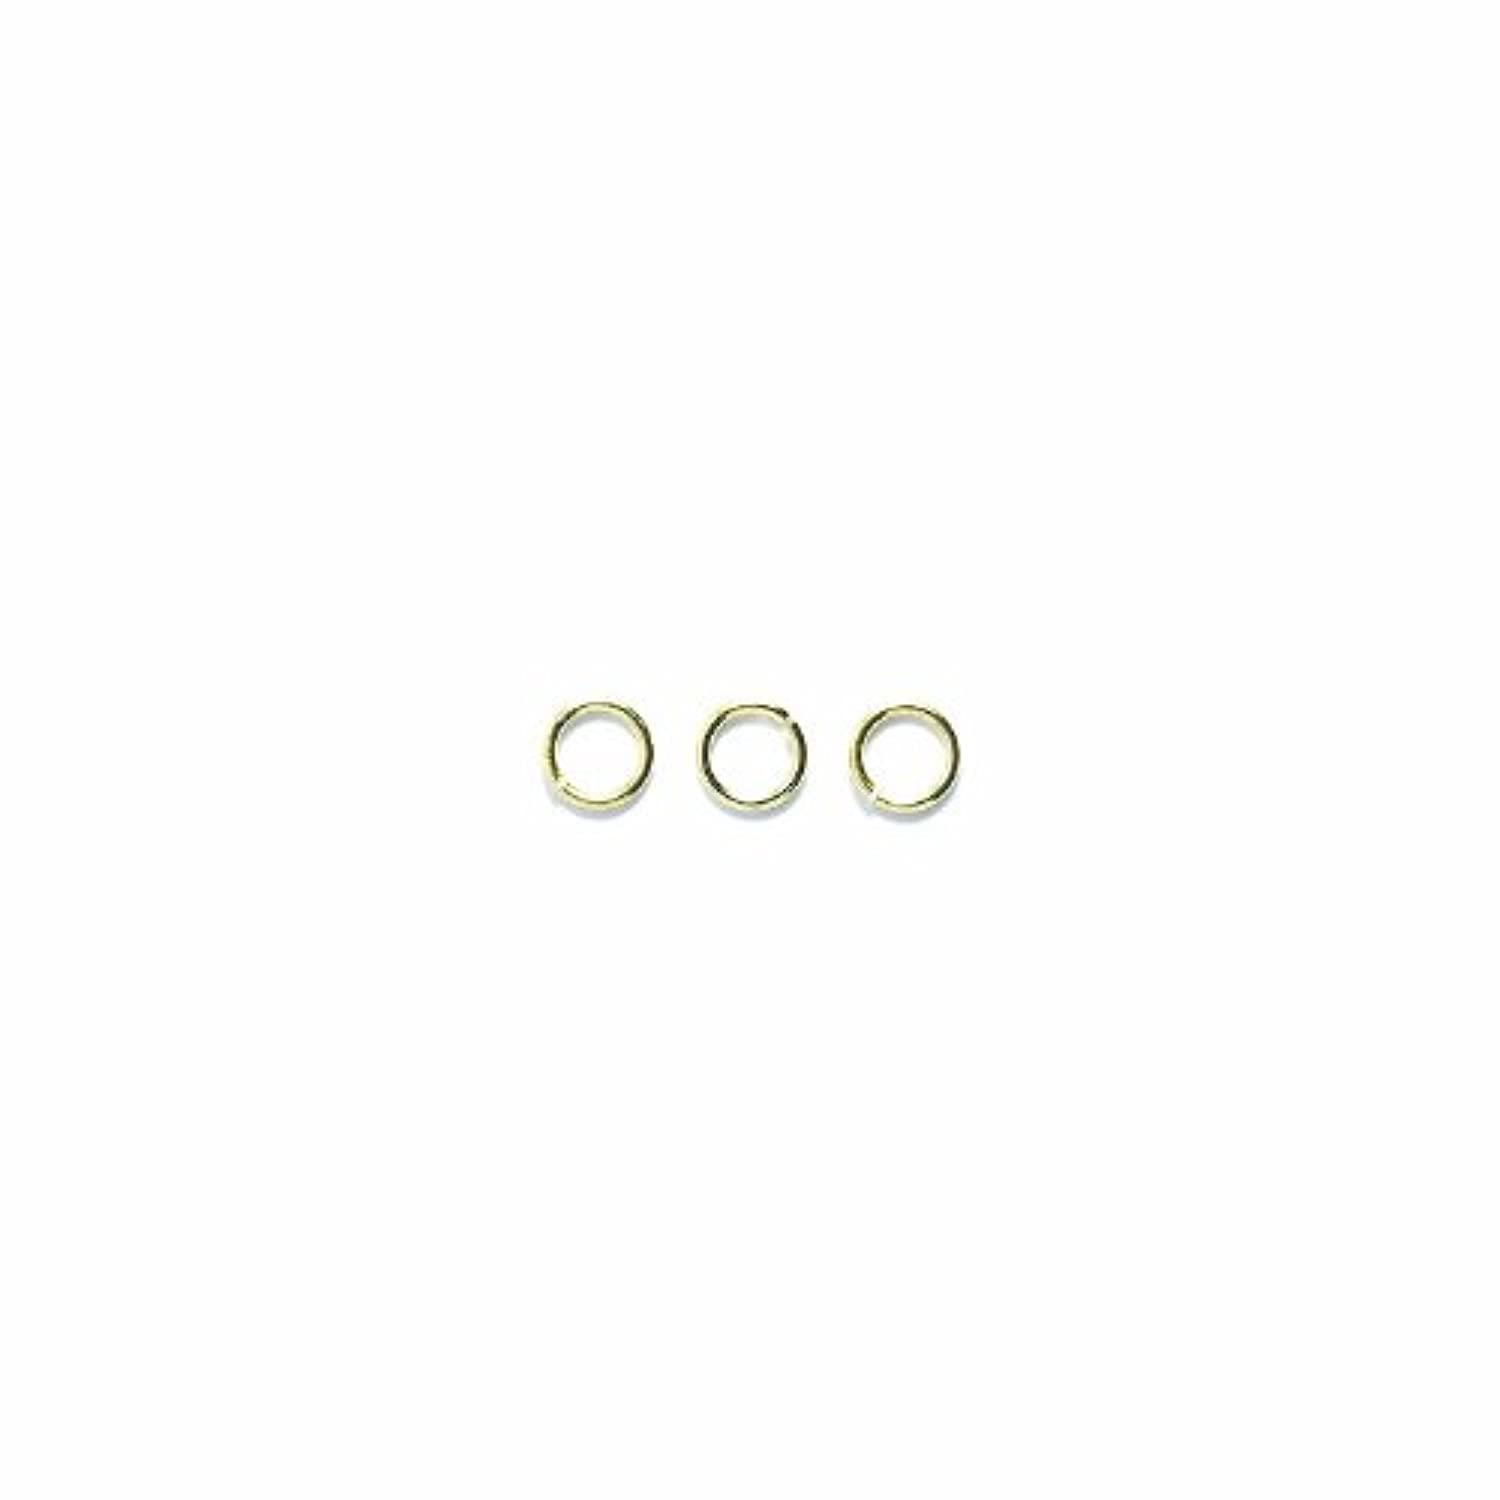 Shipwreck Beads Plated Brass Jump Ring, 5 mm, 21-Gauge, Metallic, Gold, 50 gm Pack